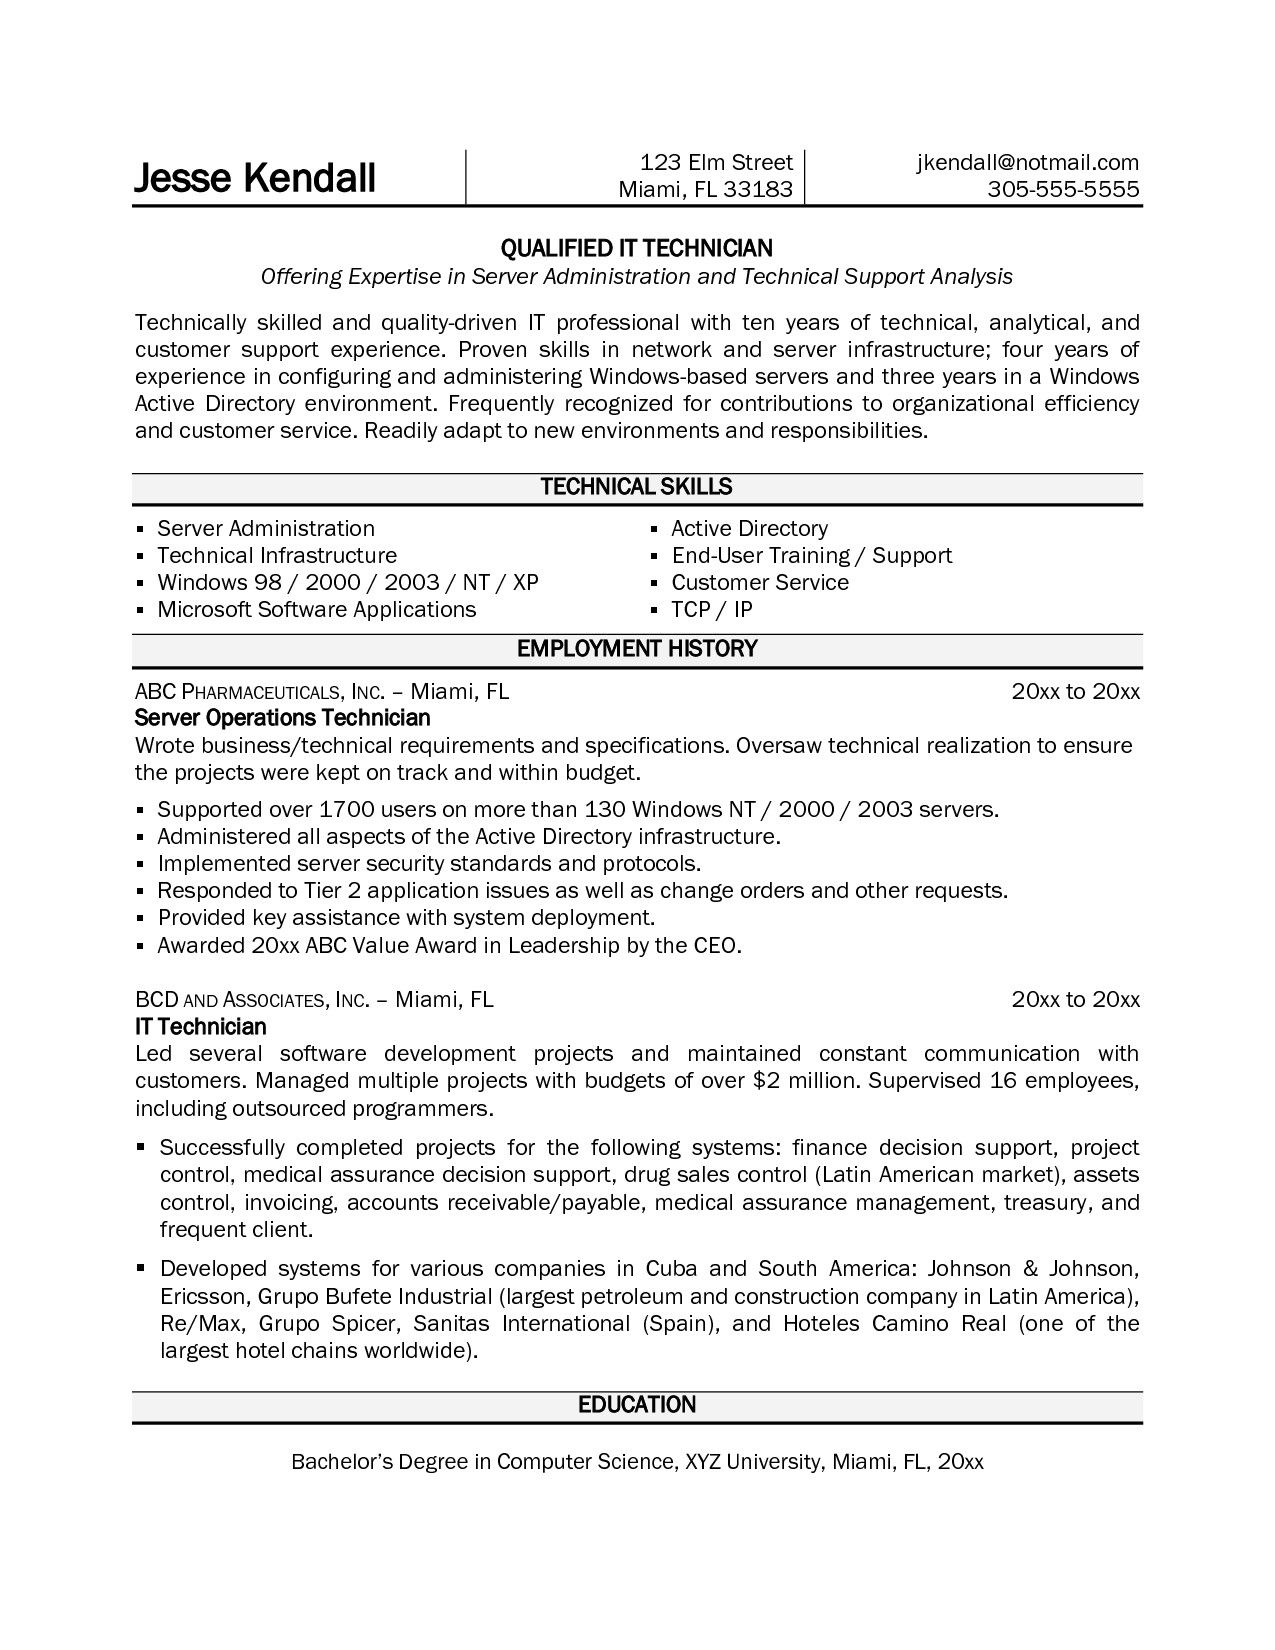 20 Of The Best Ideas For Computer Technician Resume Check More At Http Sktrnhorn Co Computer Tech Resume Objective Sample Resume No Experience Resume Skills